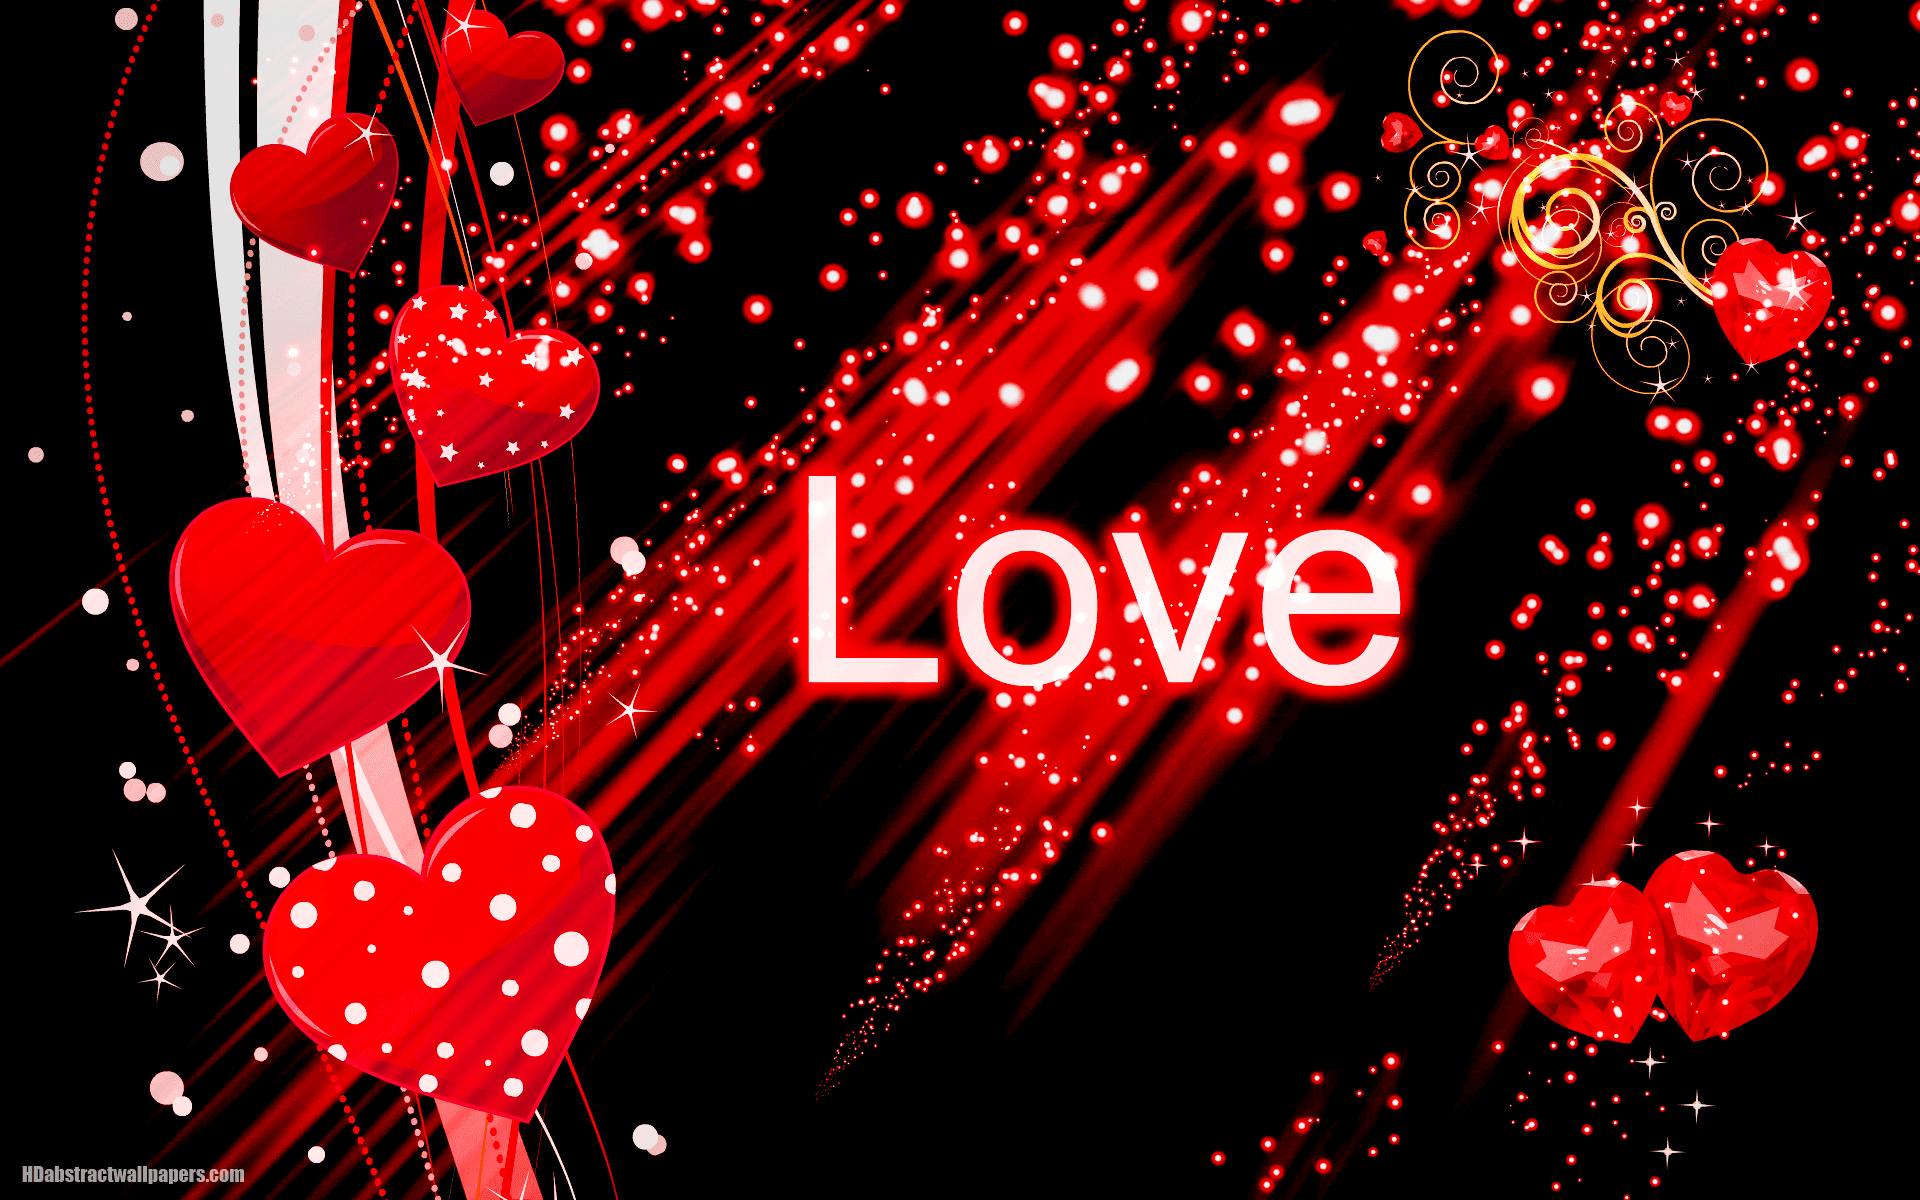 Black Red Love Wallpaper : Black abstract wallpaper with red love hearts HD Abstract Wallpapers